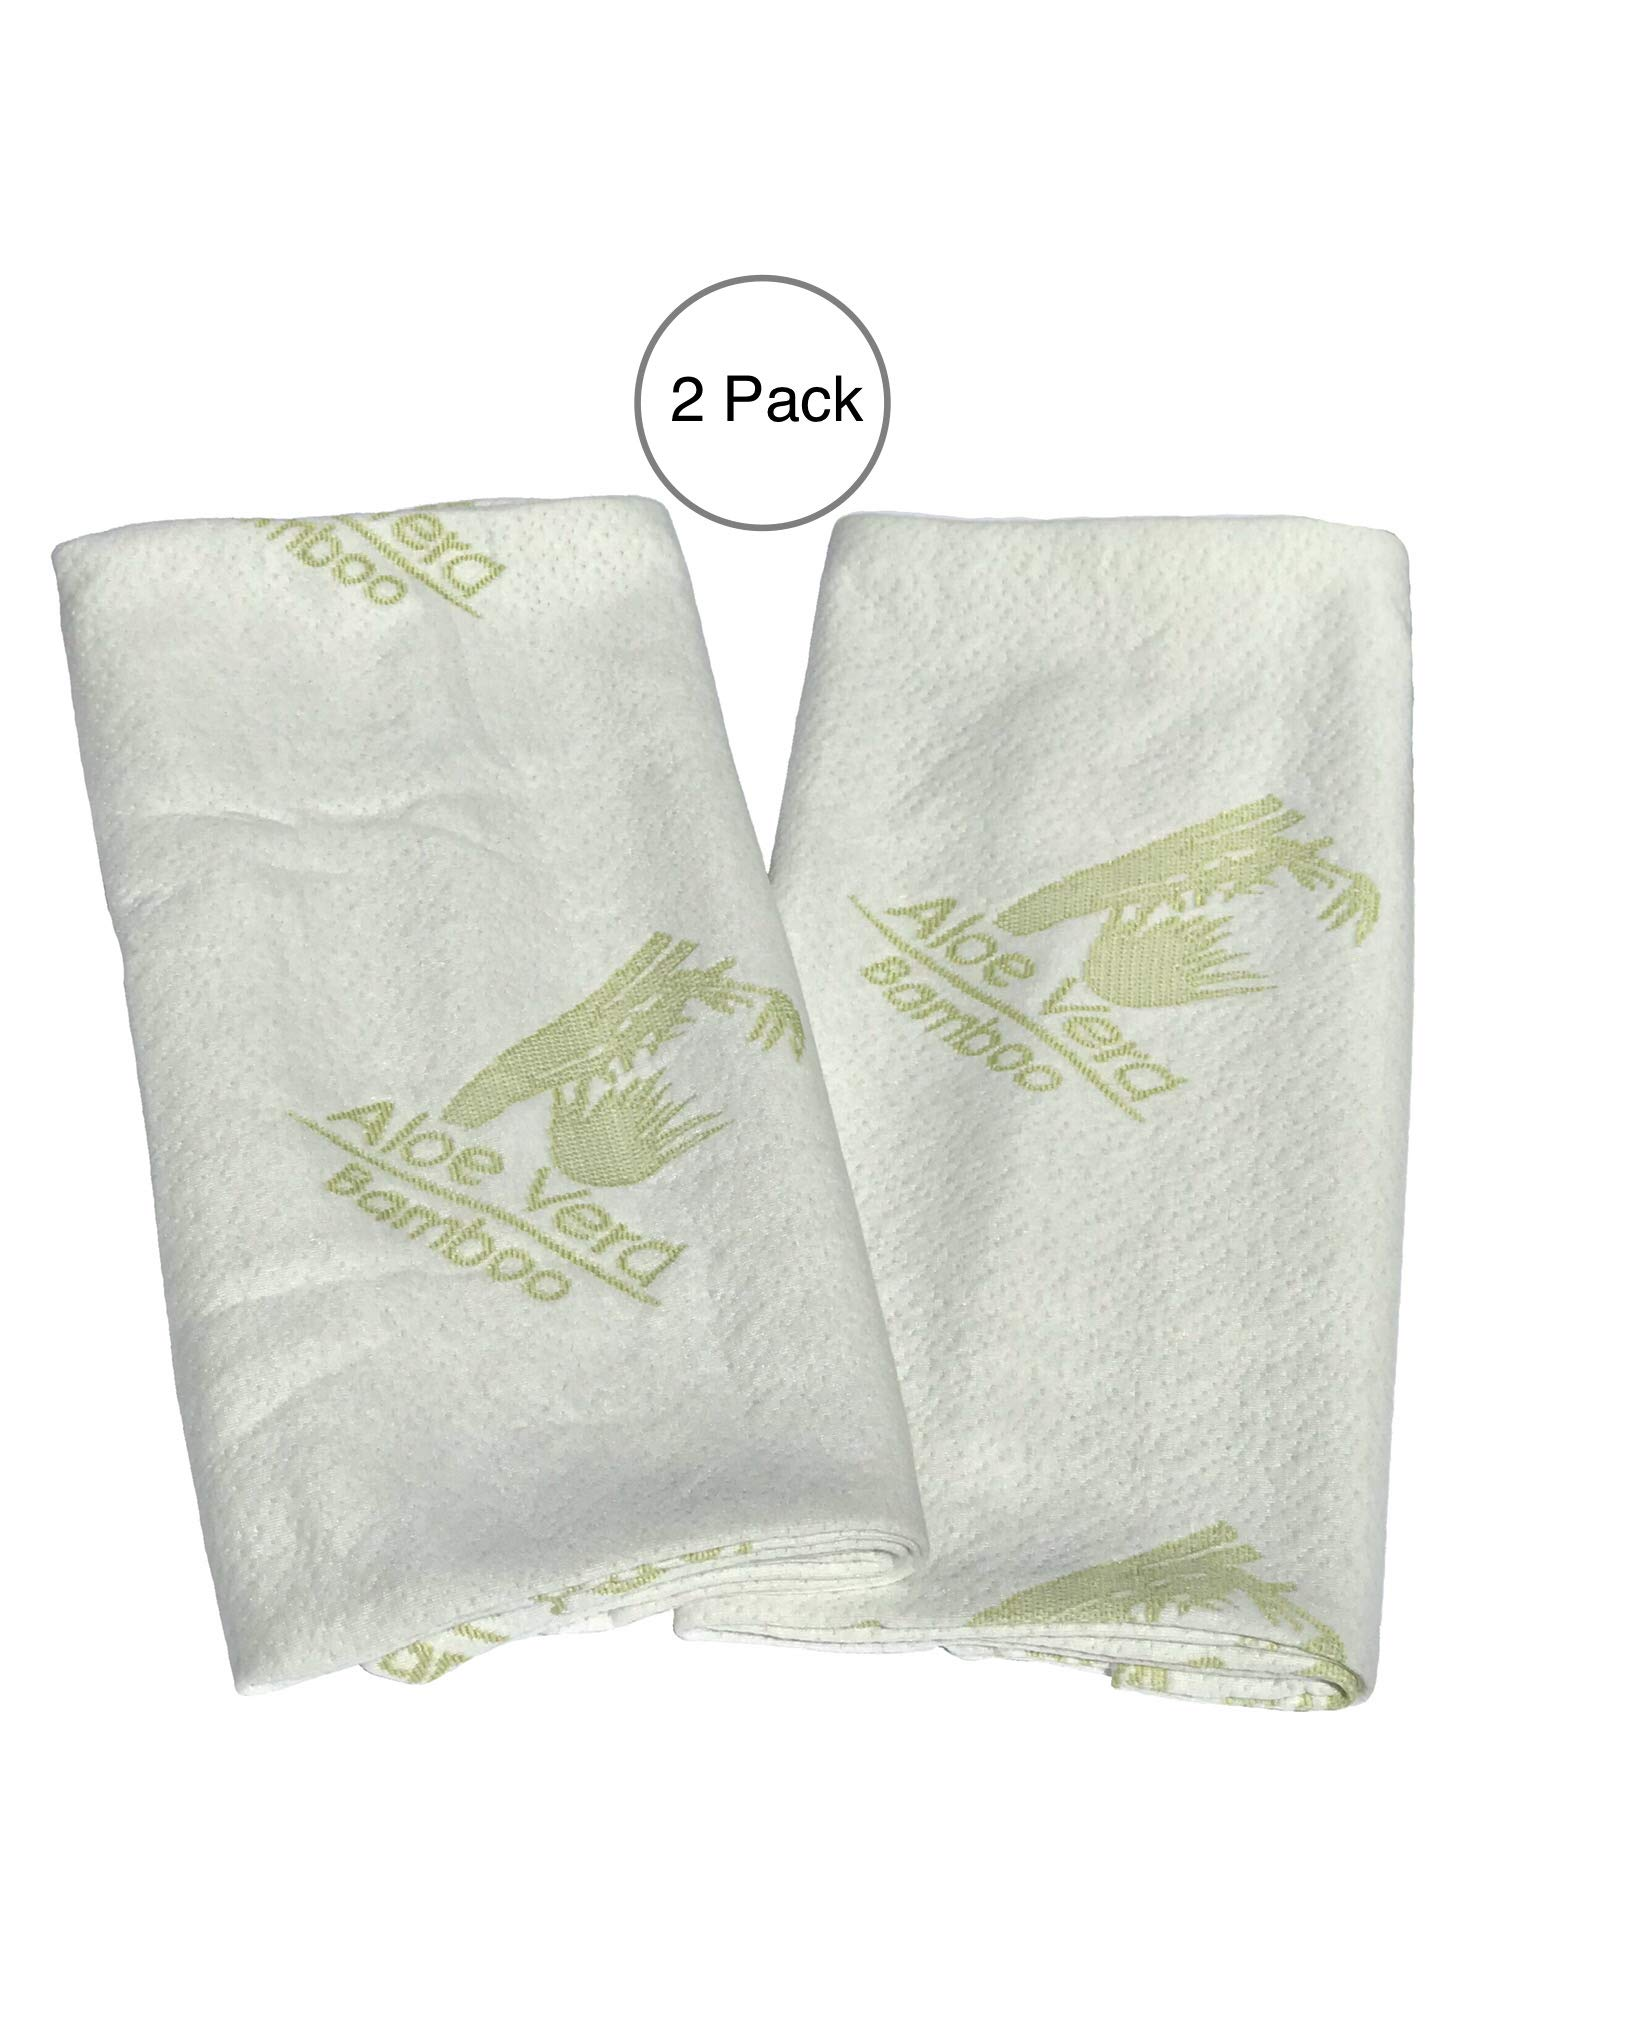 2-Piece Set Bamboo Pillow Protector Cover - Fits Queen and Standard Pillows - Premium Zippered encasement case-Dust Mite-Bed Bug Proof - Hypoallergenic-Cooling - Aloe Vera Infused